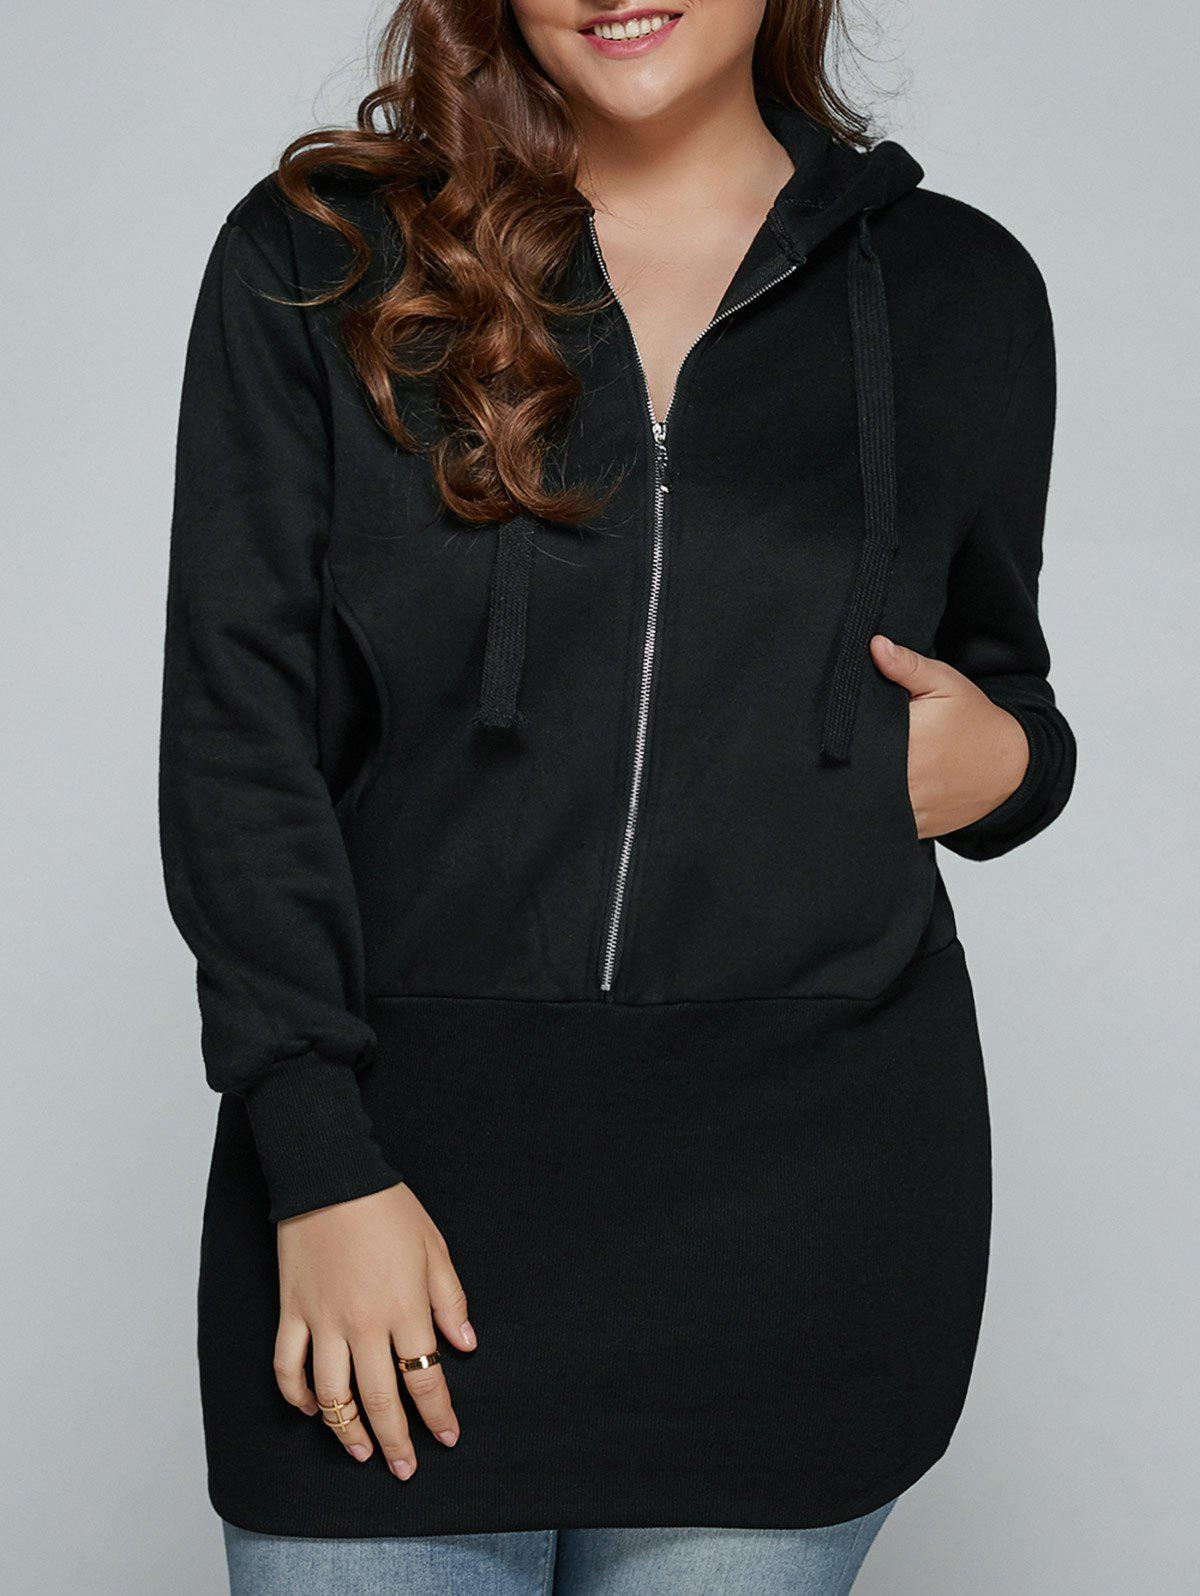 Plus Size Zip Up Dress Hooded - Noir 3XL